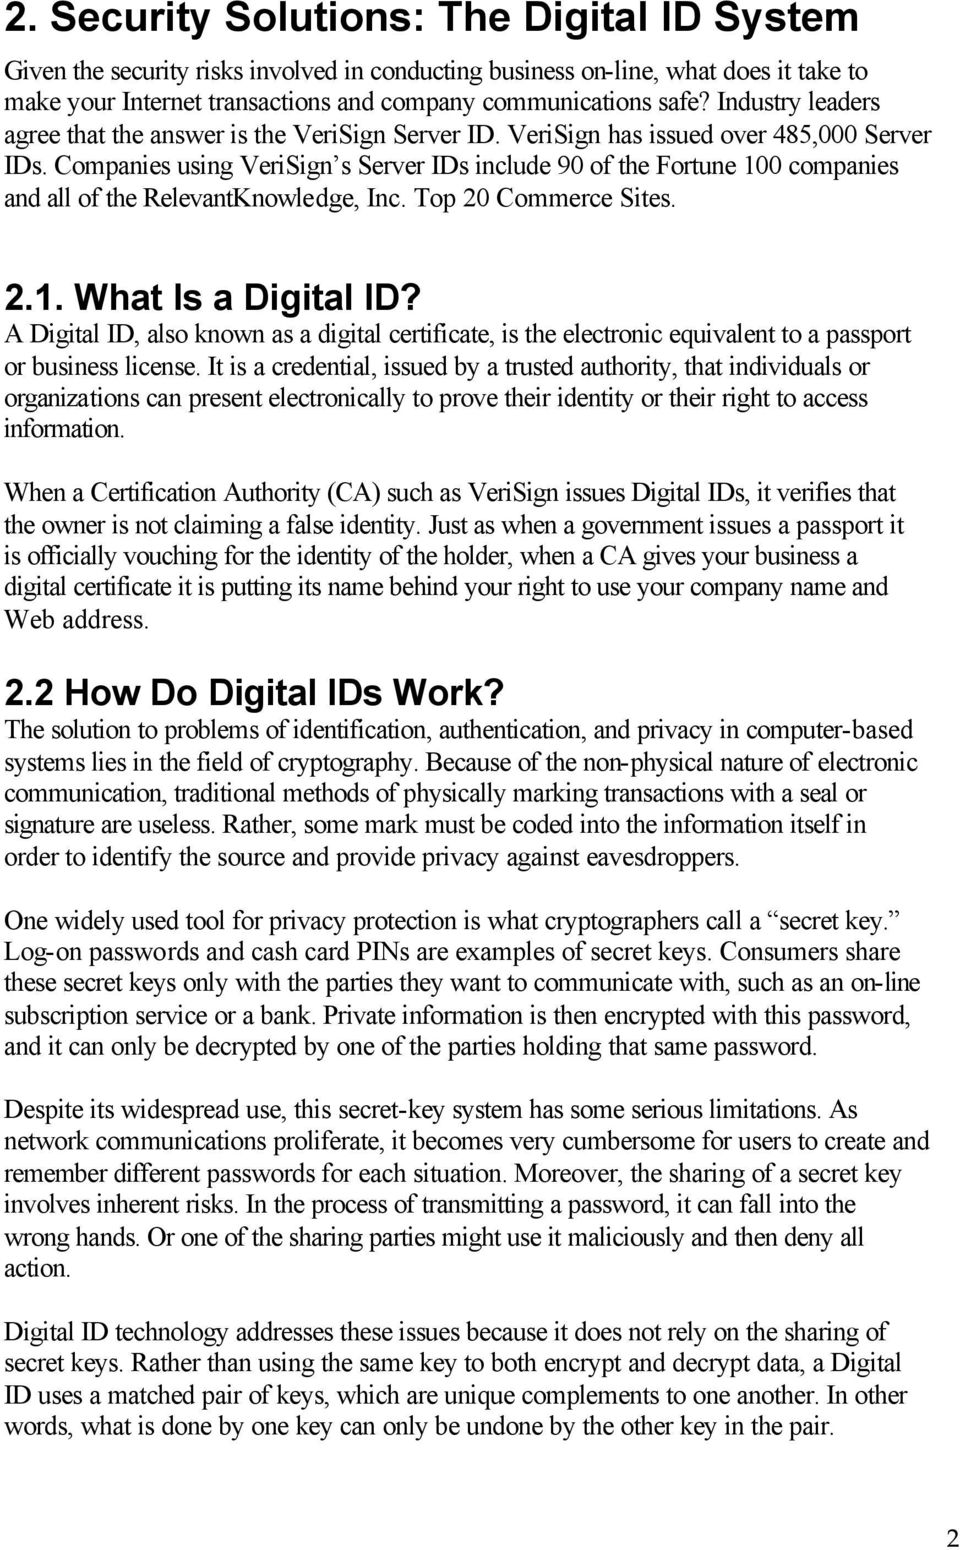 Companies using VeriSign s Server IDs include 90 of the Fortune 100 companies and all of the RelevantKnowledge, Inc. Top 20 Commerce Sites. 2.1. What Is a Digital ID?